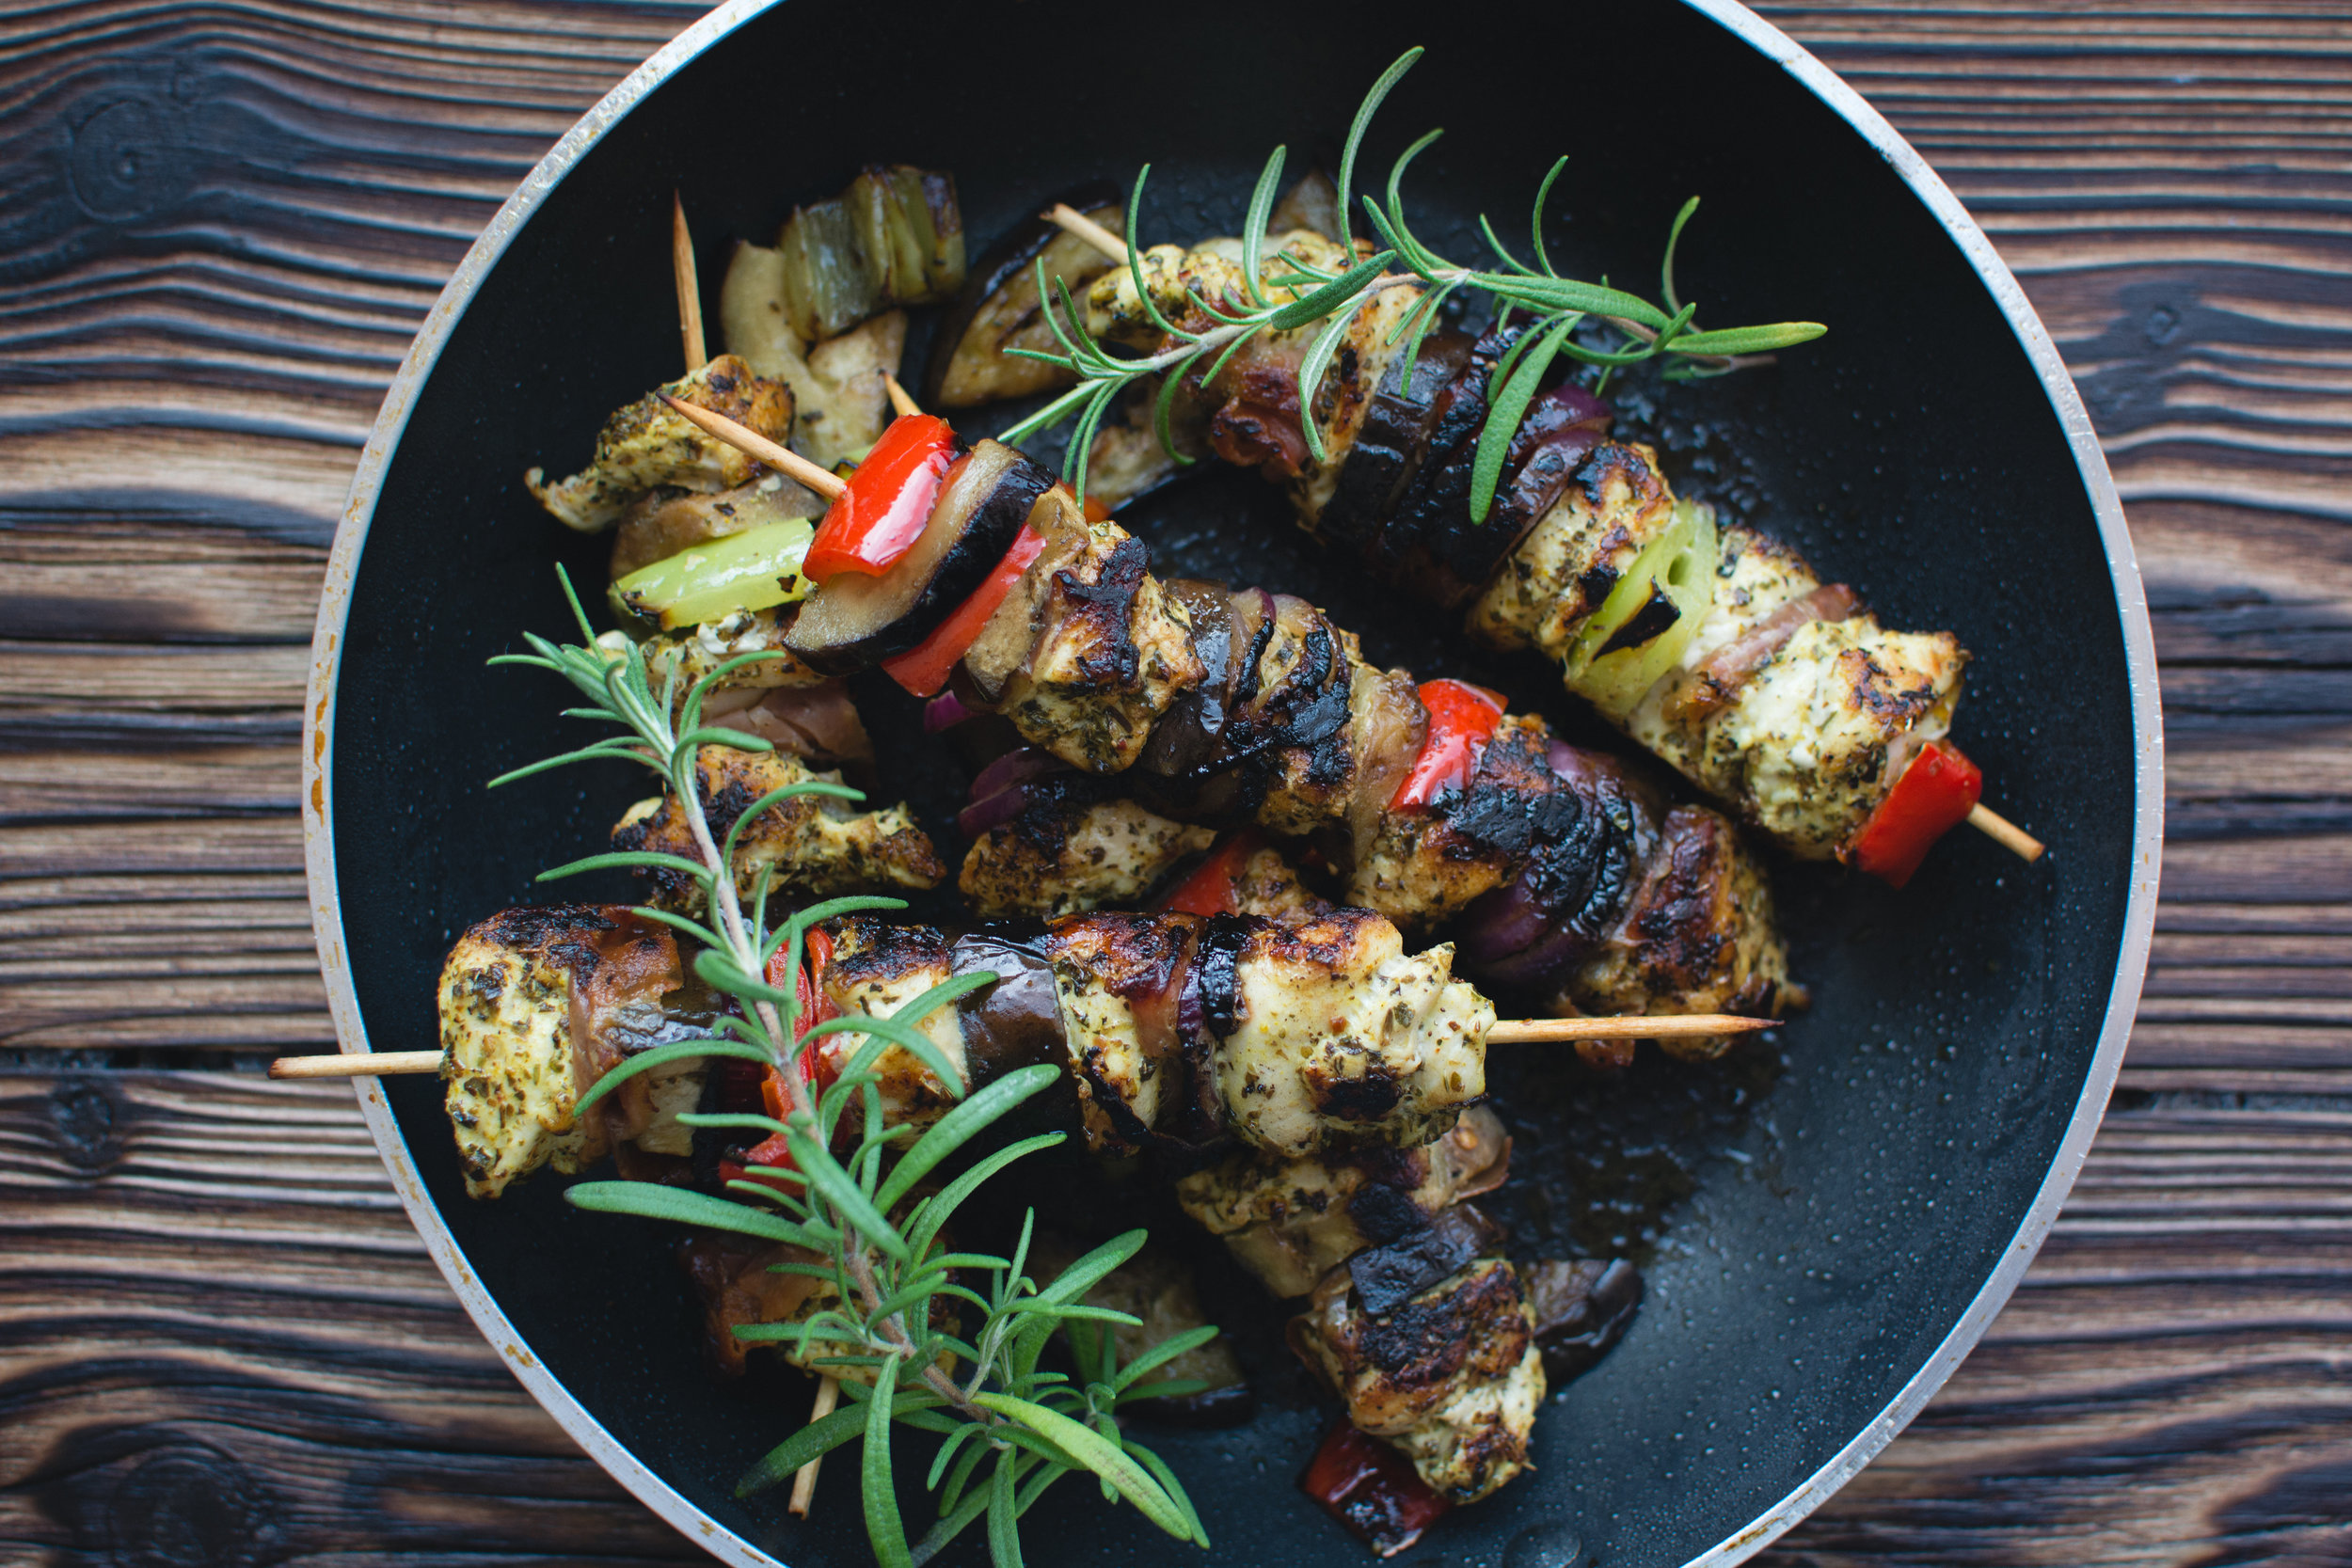 chicken-skewers-in-a-pan-picjumbo-com.jpg